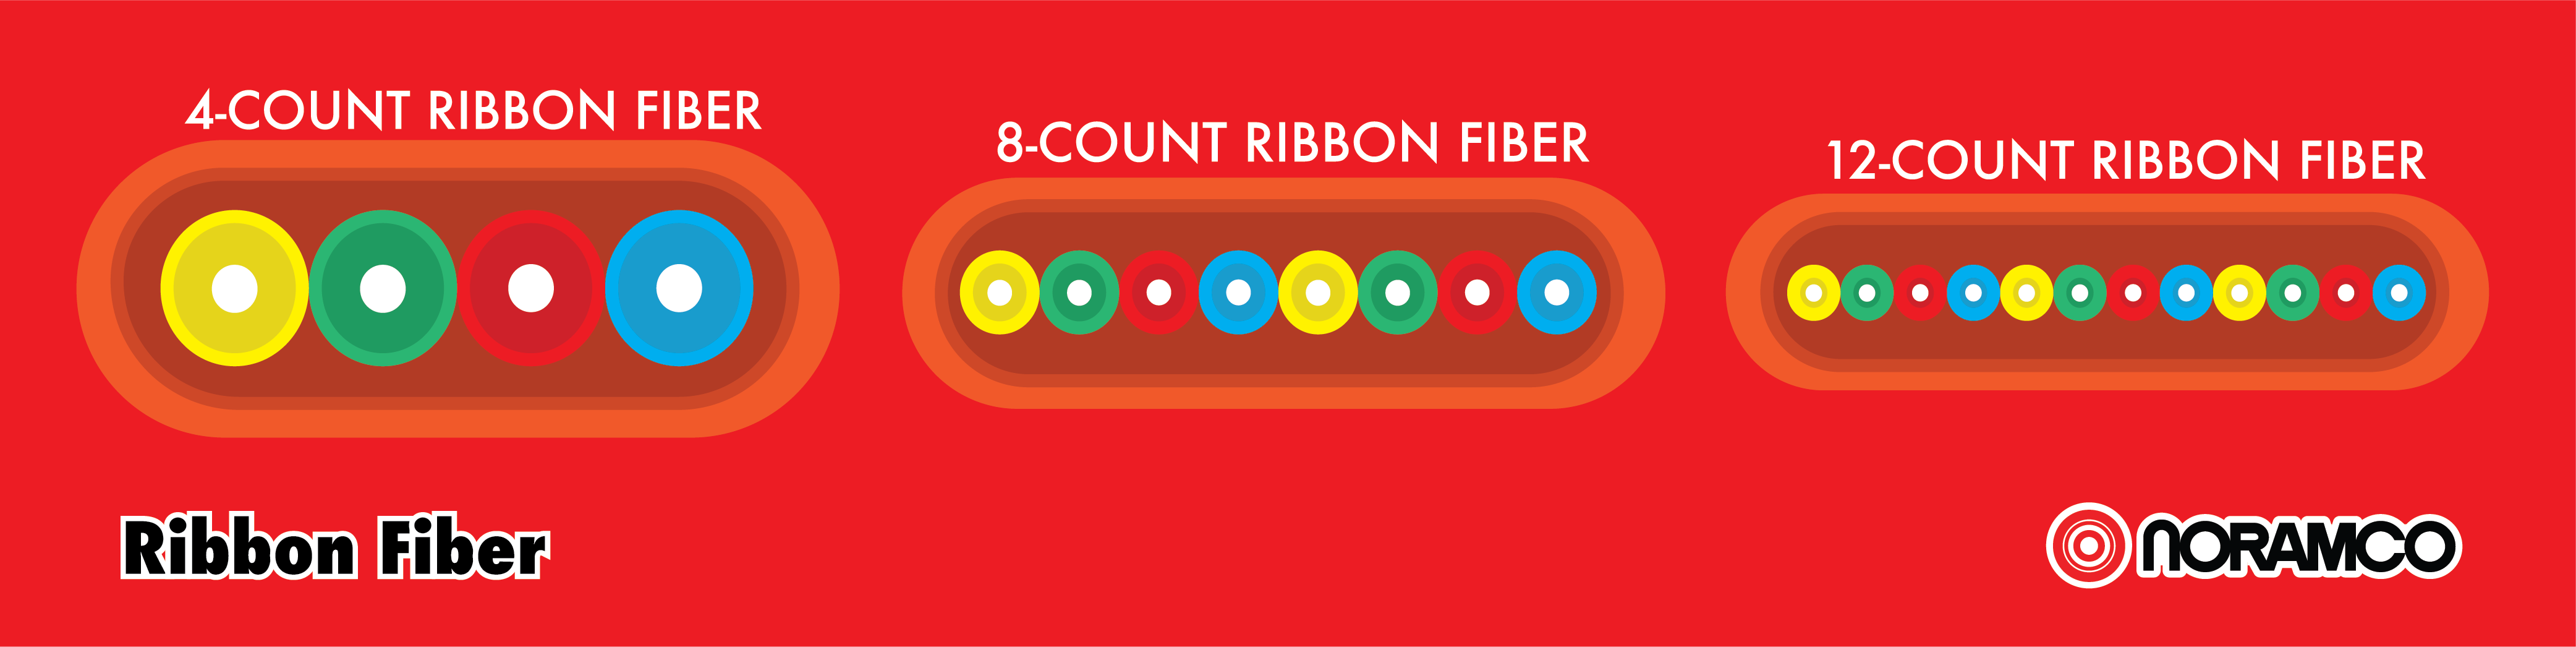 ribbon-fiber-sizes